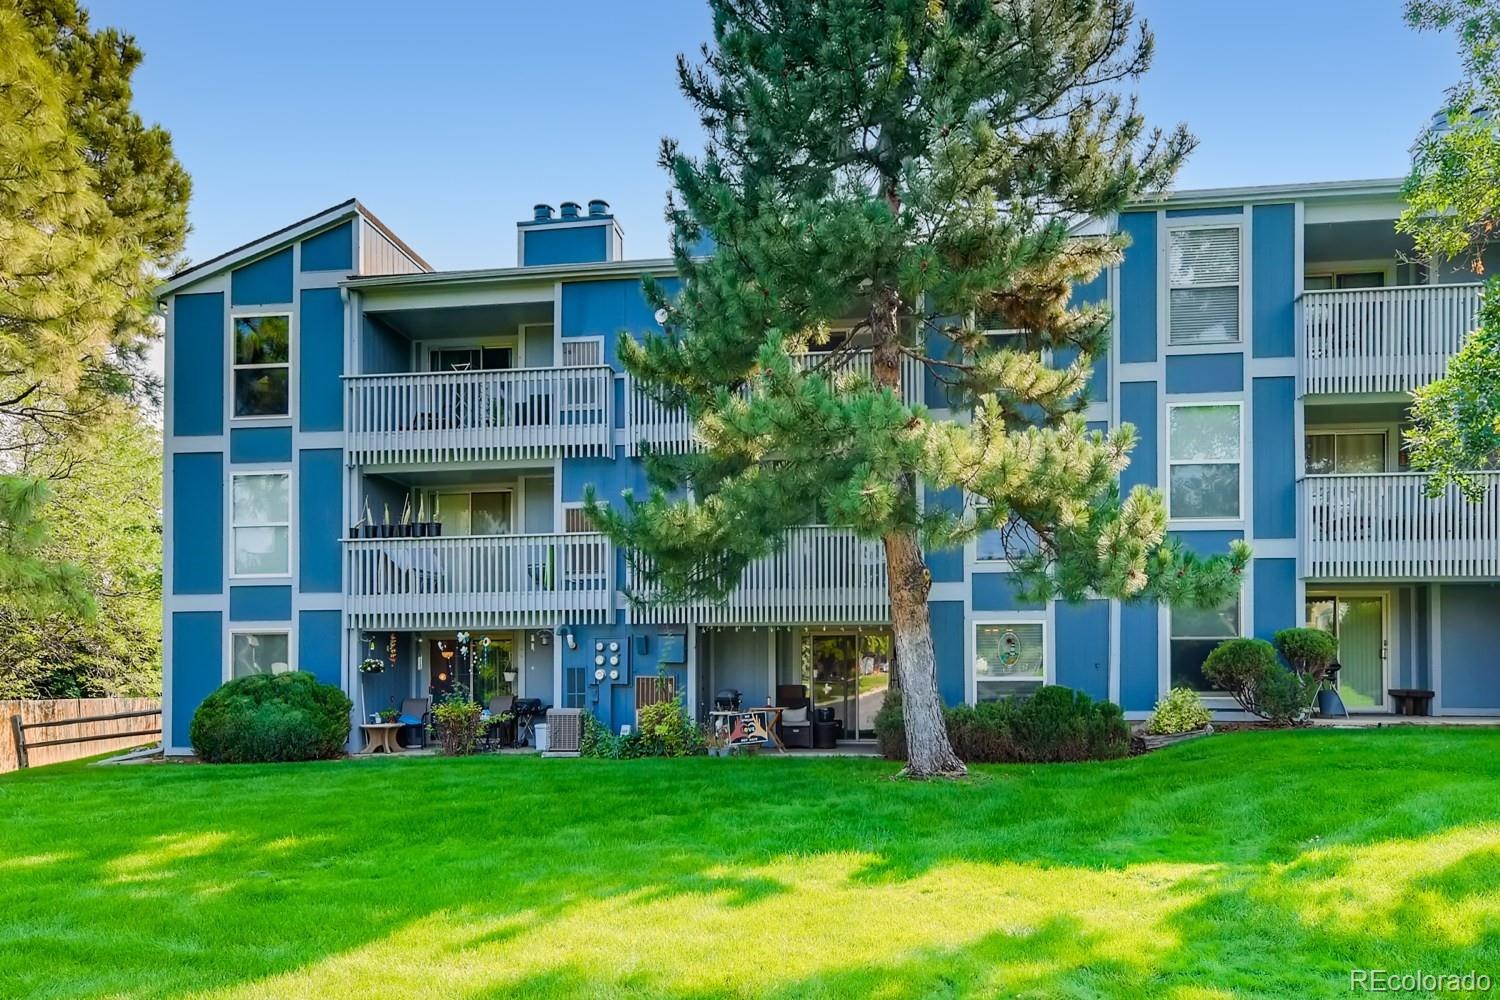 This is a spacious 1 bedroom, 1 bathroom FHA approved condo in Centennial close to DTC! It has everything you could want under $250k... spacious kitchen, dining room, wood burning fireplace in the family room and laundry in the unit! This great condo is on the first floor with HOA maintained grass for you to enjoy right out the sliding door. Your new condo comes with an assigned carport spot and there is plenty of parking spots or street parking and a newer furnace and AC unit.